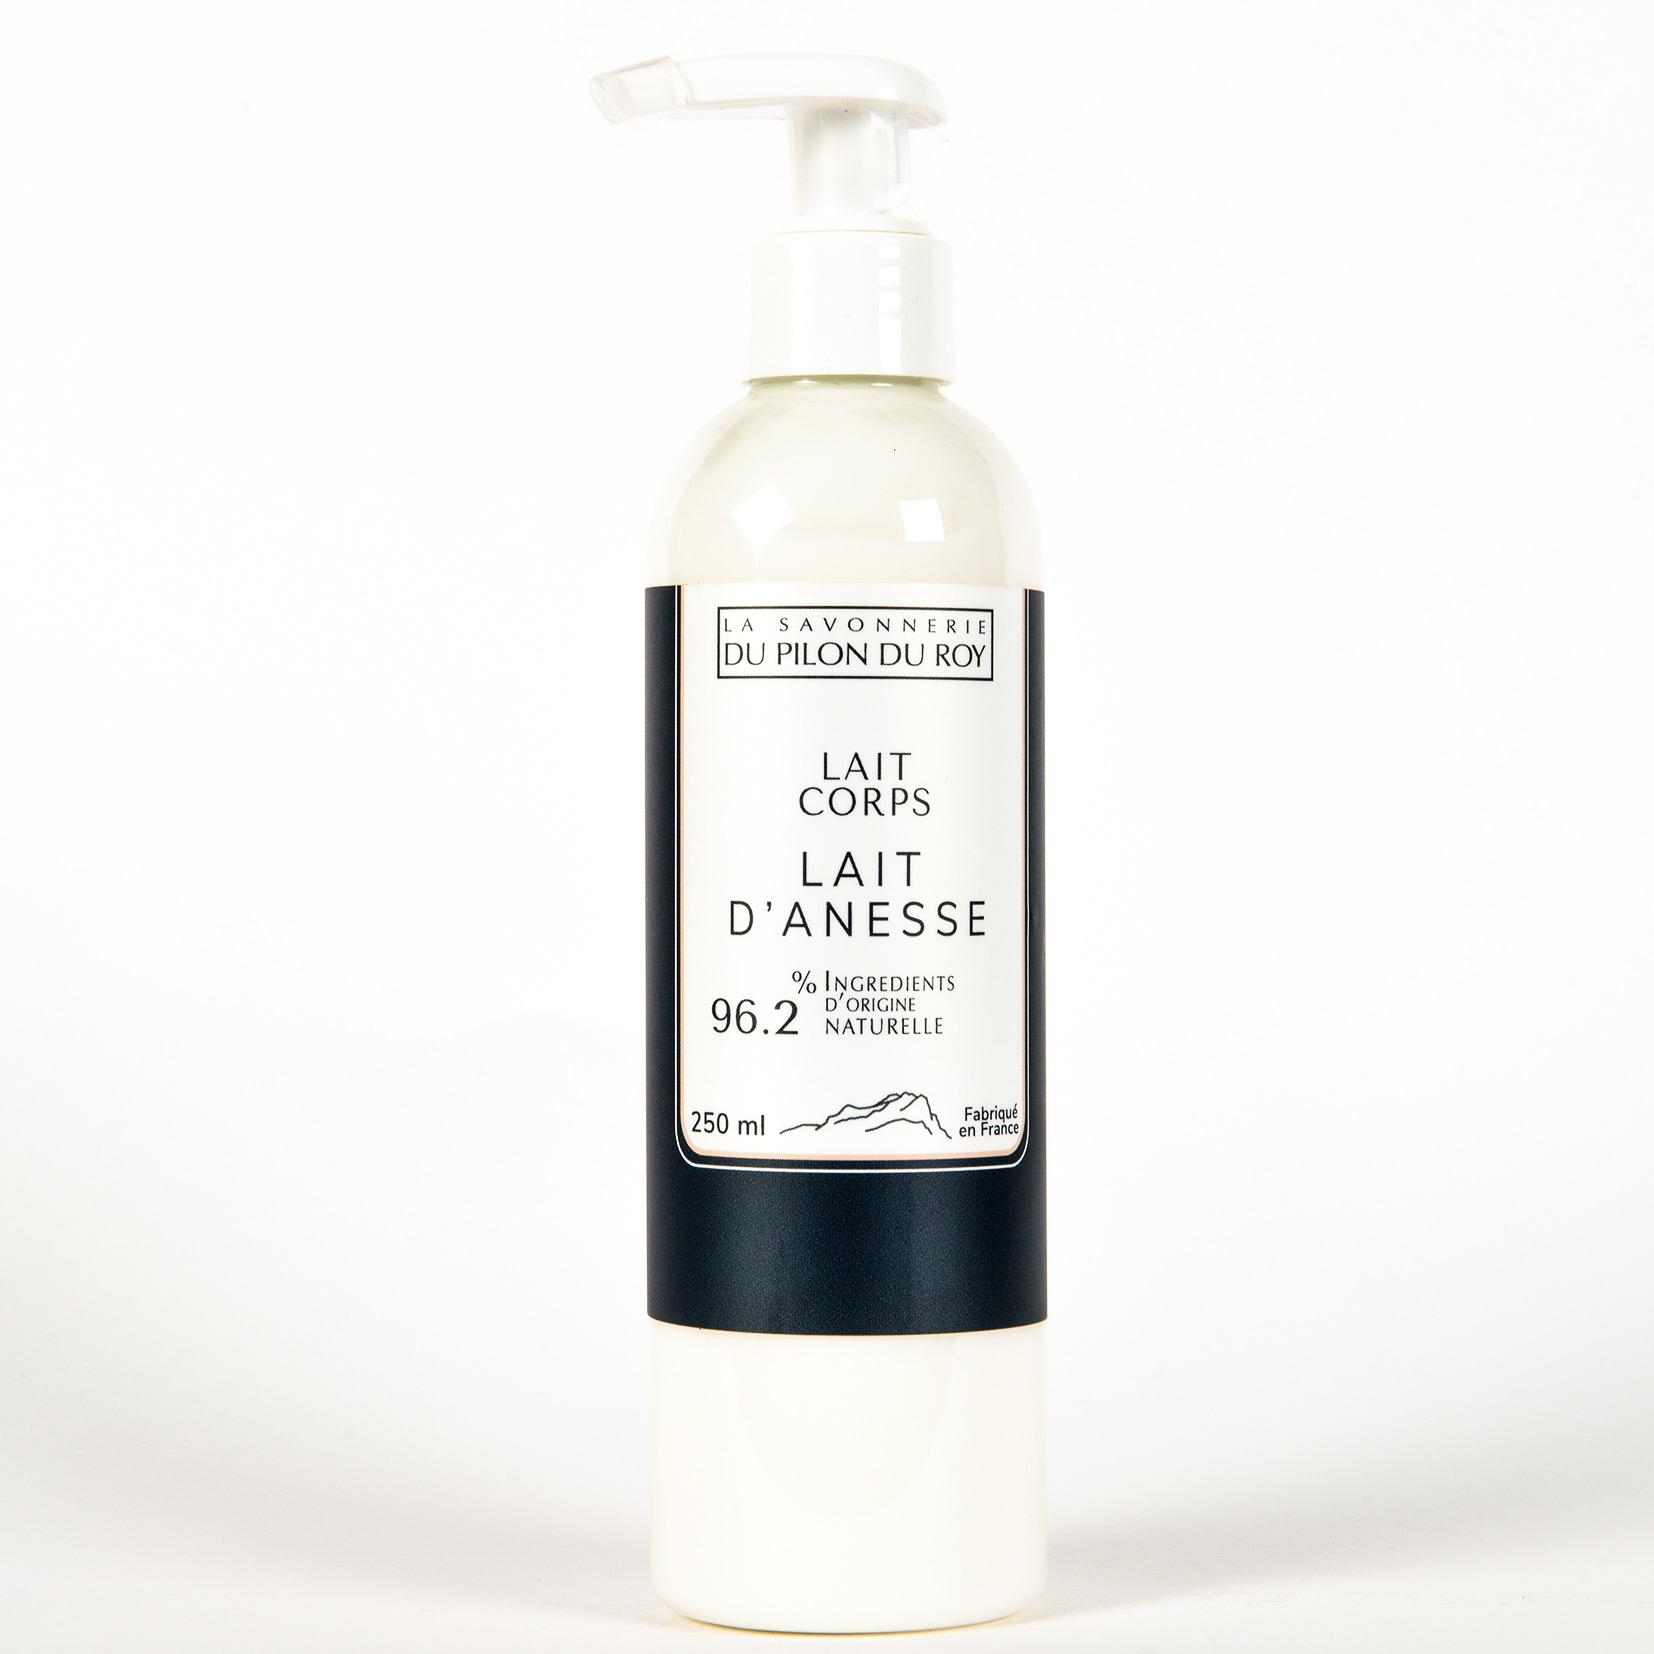 Lait corps anesse vanille caramel